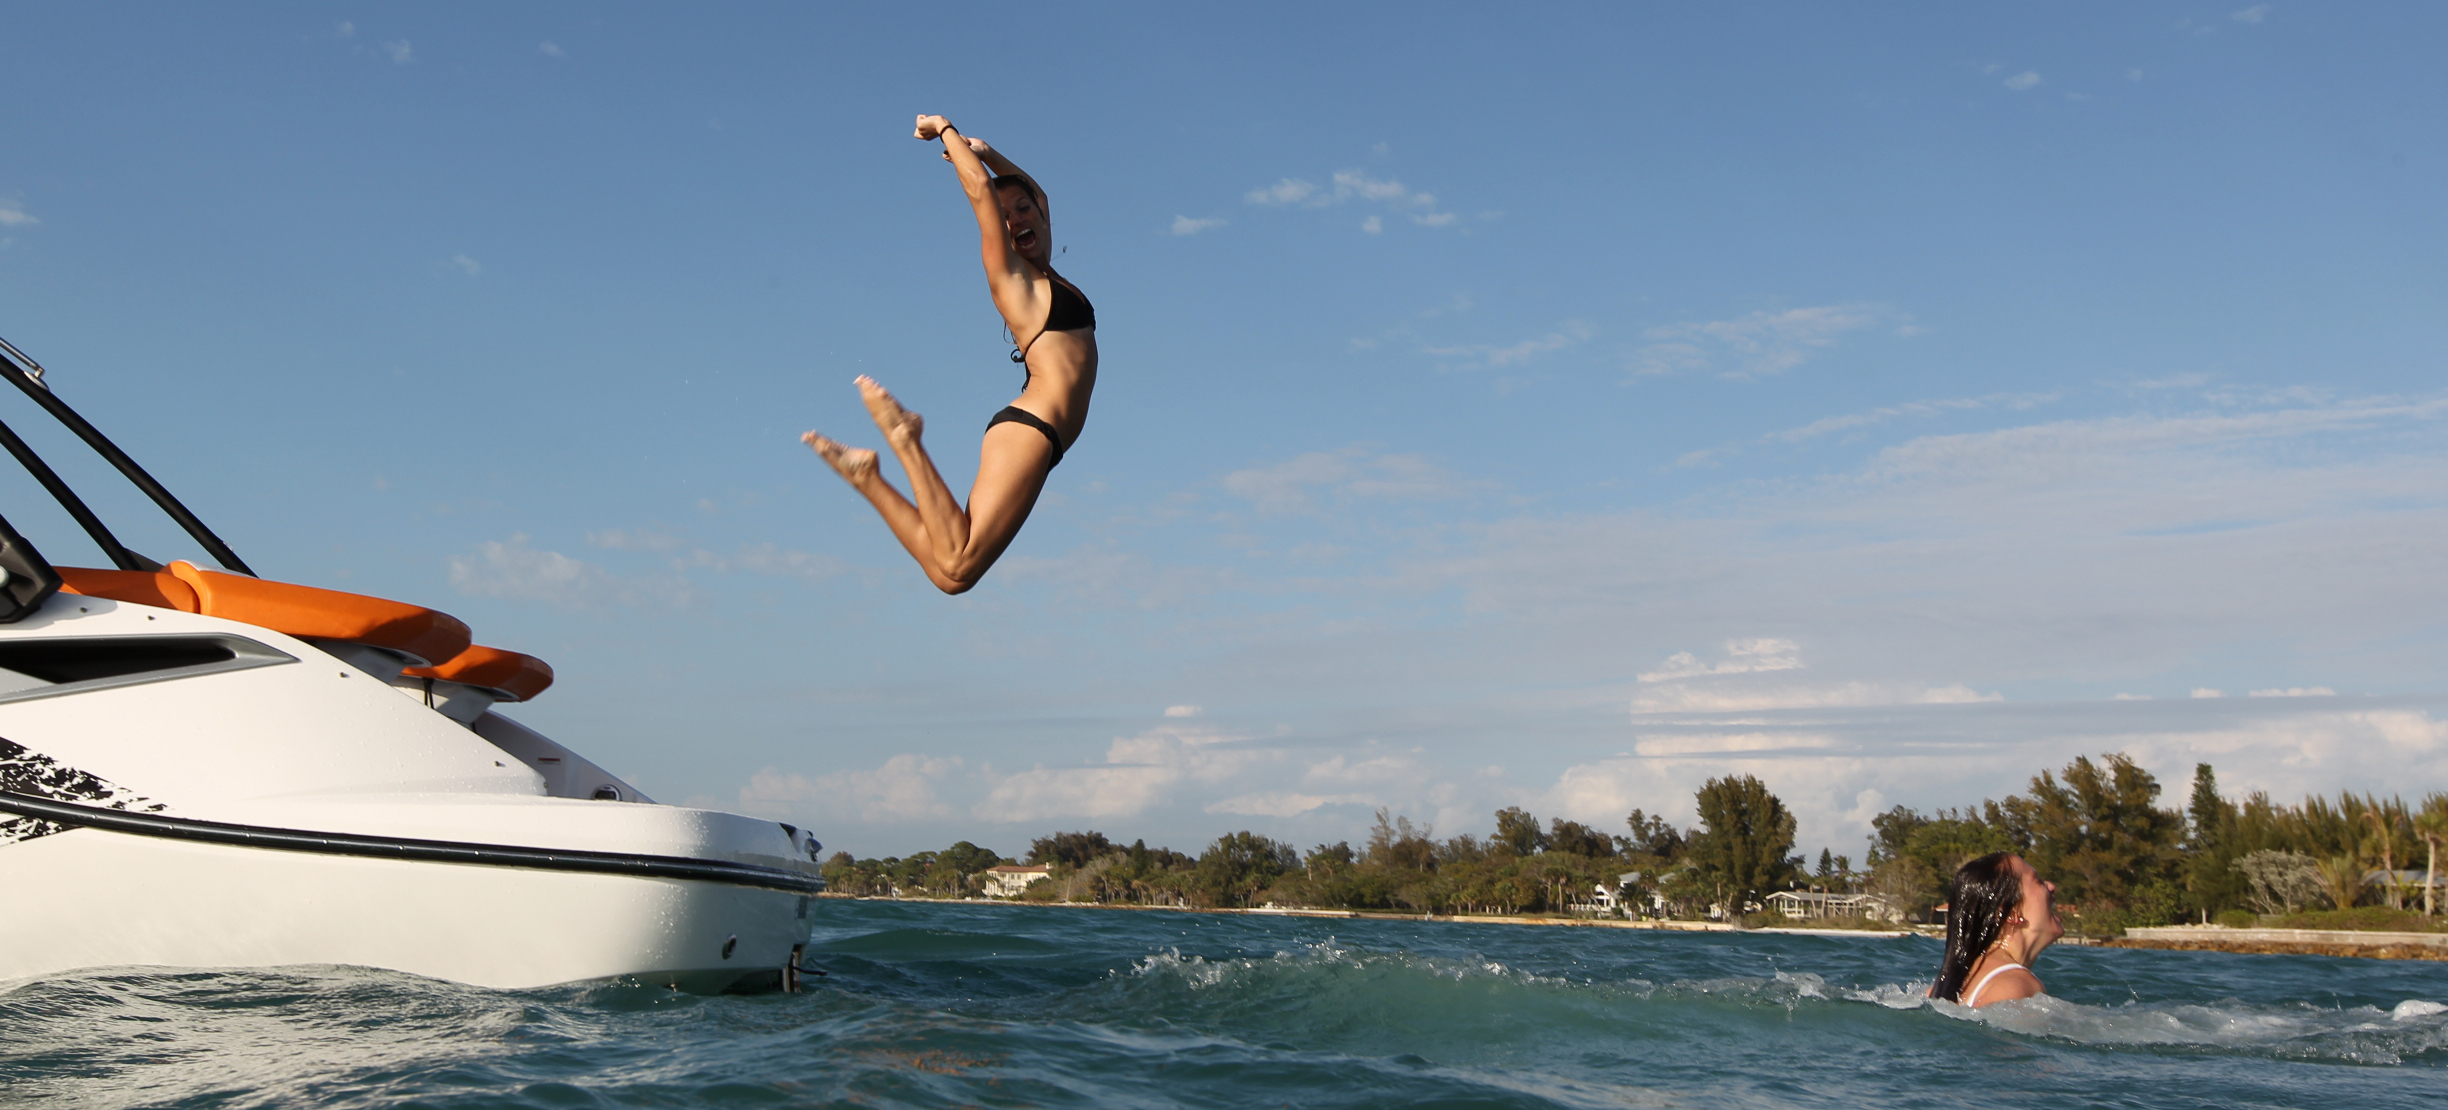 Women excitedly jump off a yacht into the blue water